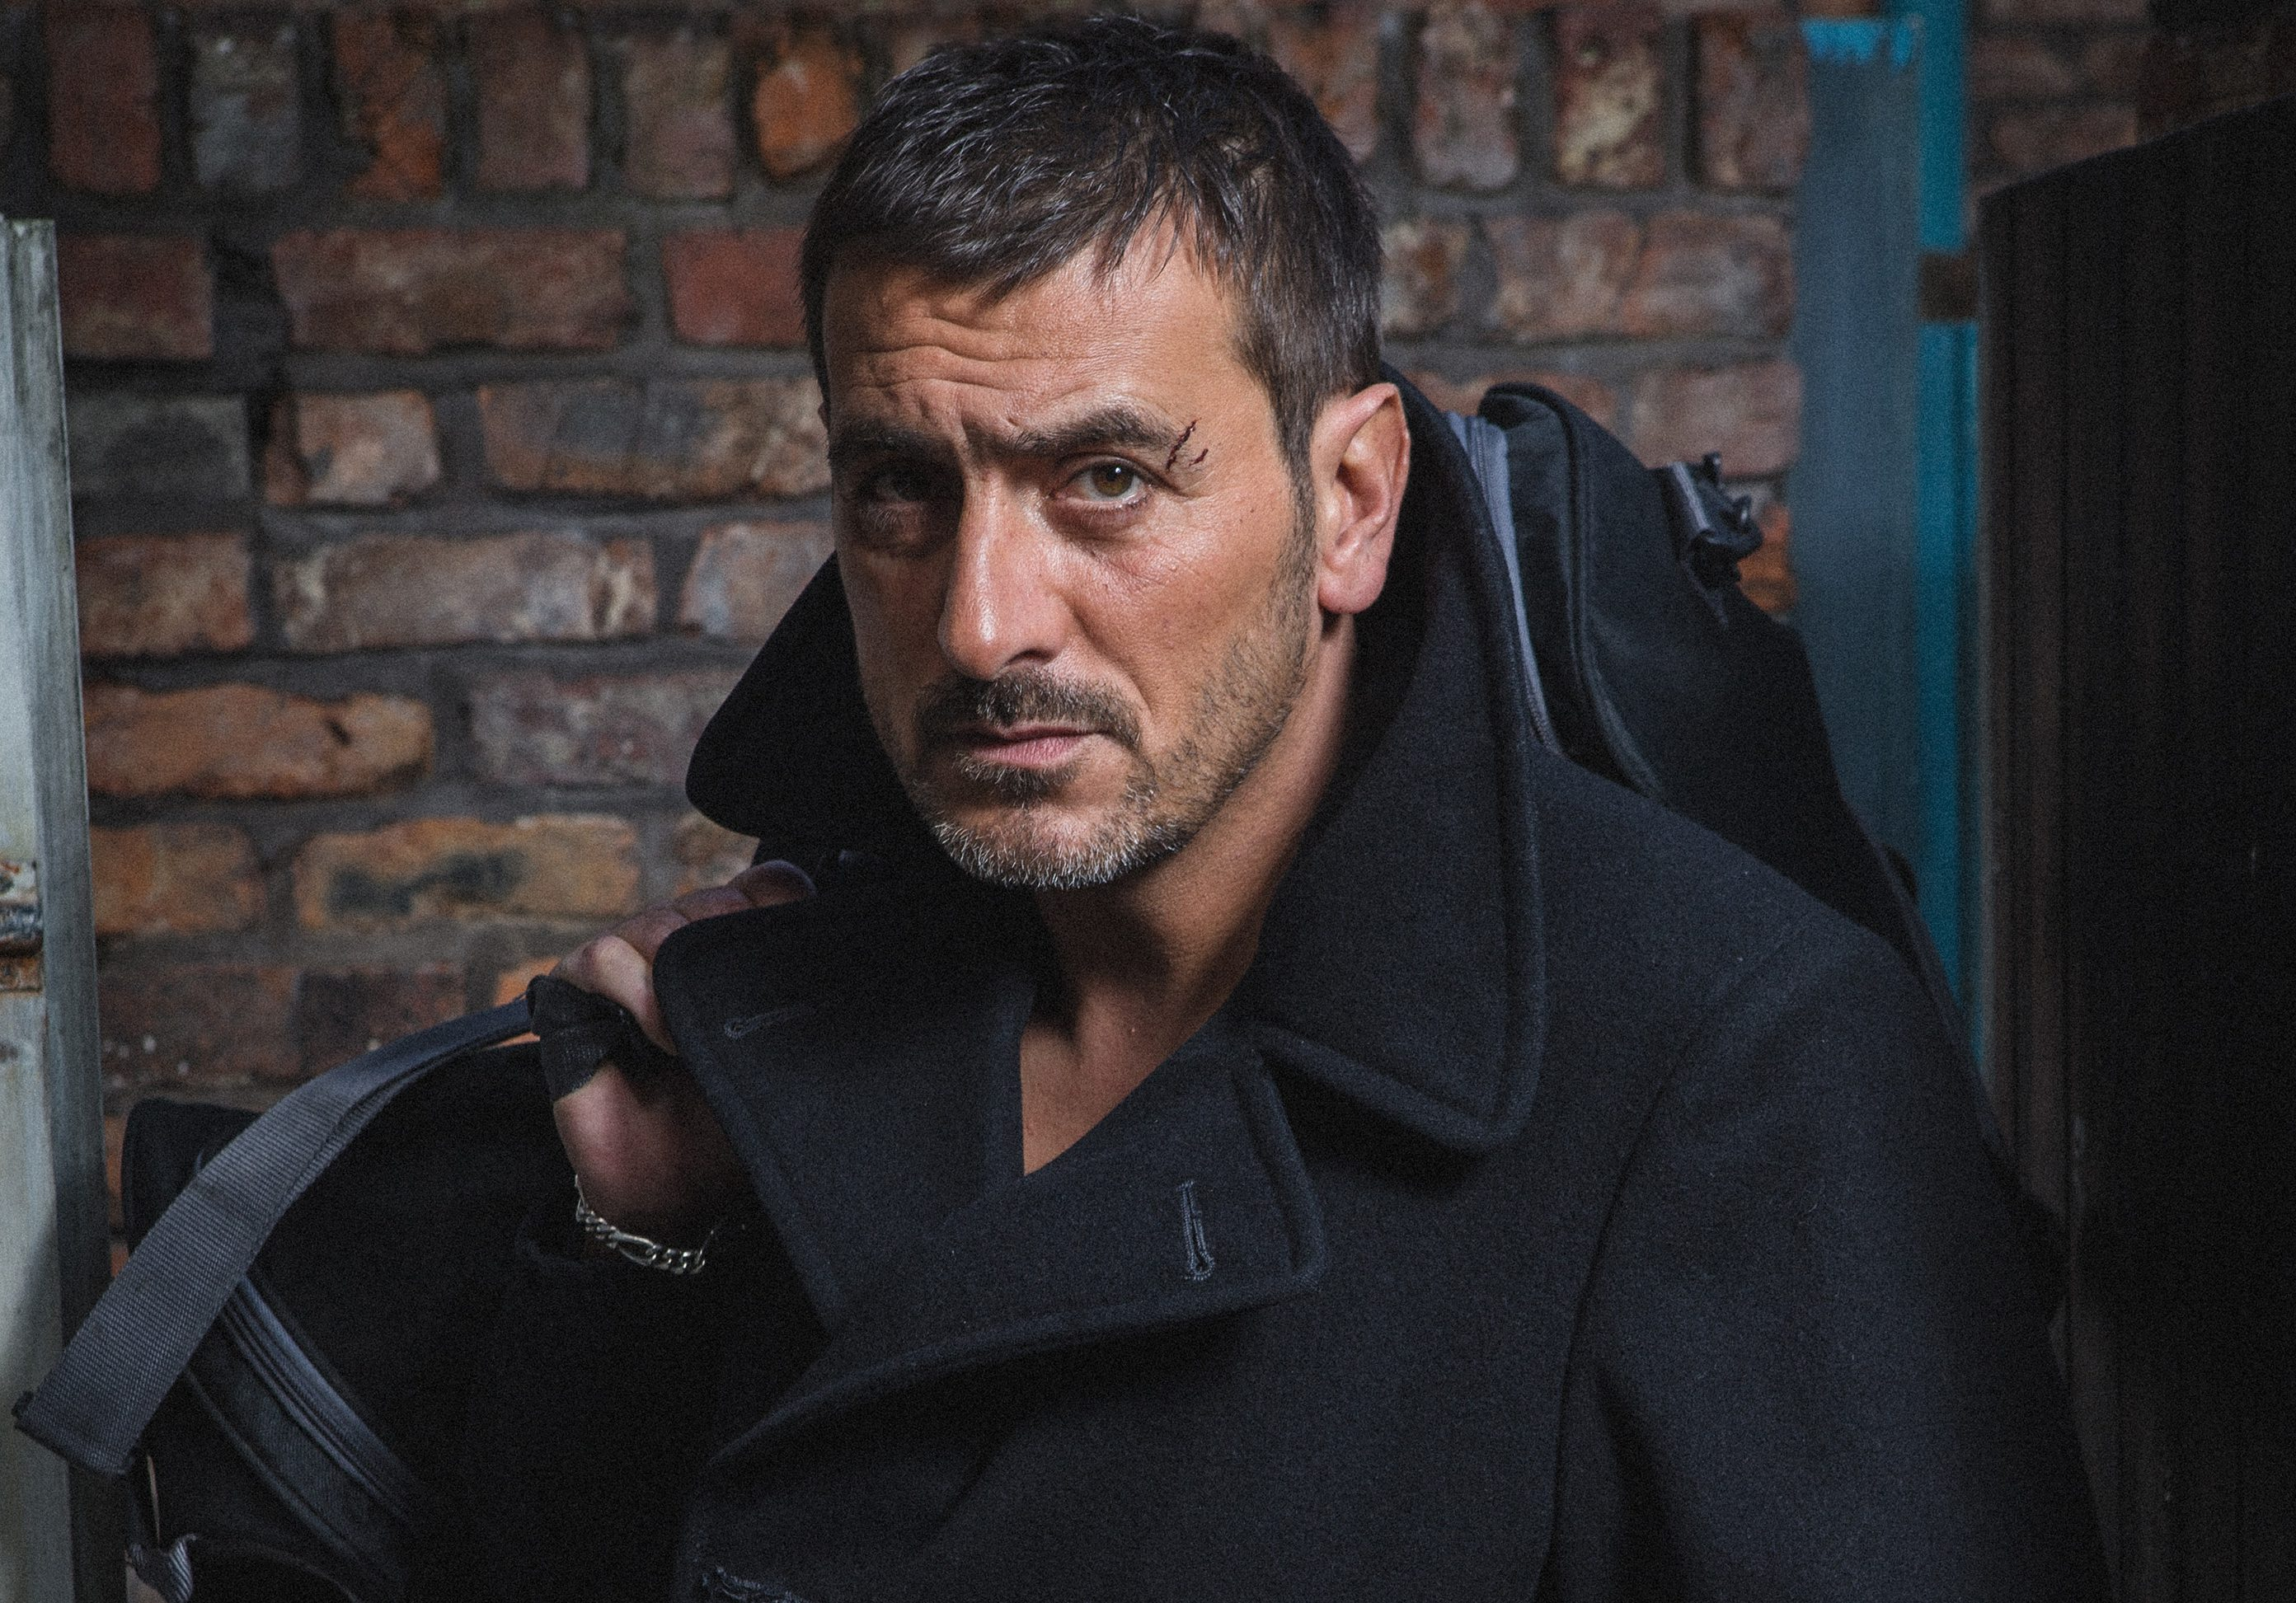 FROM ITV STRICT EMBARGO - NO USE BEFORE TUESDAY 11 OCTOBER 2016                                 Coronation Street - Week 42 Monday 17 October - Friday 21 October 2016  Peter Barlow a manner which alters the visual appearance of the person photographed deemed detrimental or inappropriate by ITV plc Picture Desk. This photograph must not be syndicated to any other company, publication or website, or permanently archived, without the express written permission of ITV Plc Picture Desk. Full Terms and conditions are available on the website www.itvpictures.com